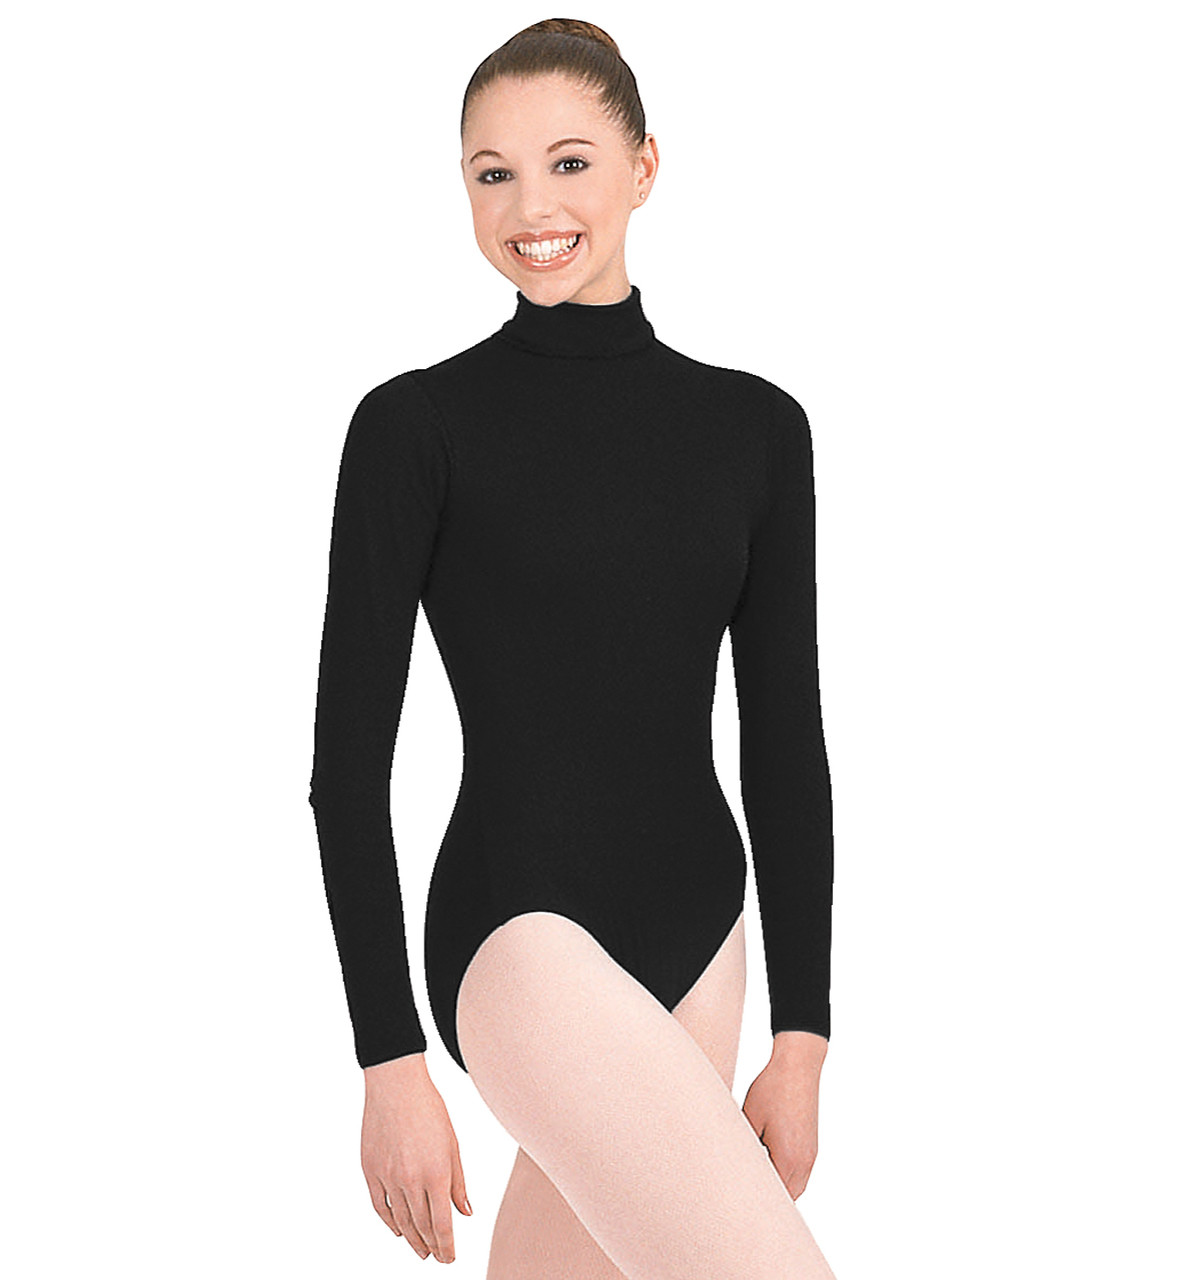 63335f56ea759 TB41 - Capezio Adult Turtleneck Long Sleeve Leotard - Capezio ...